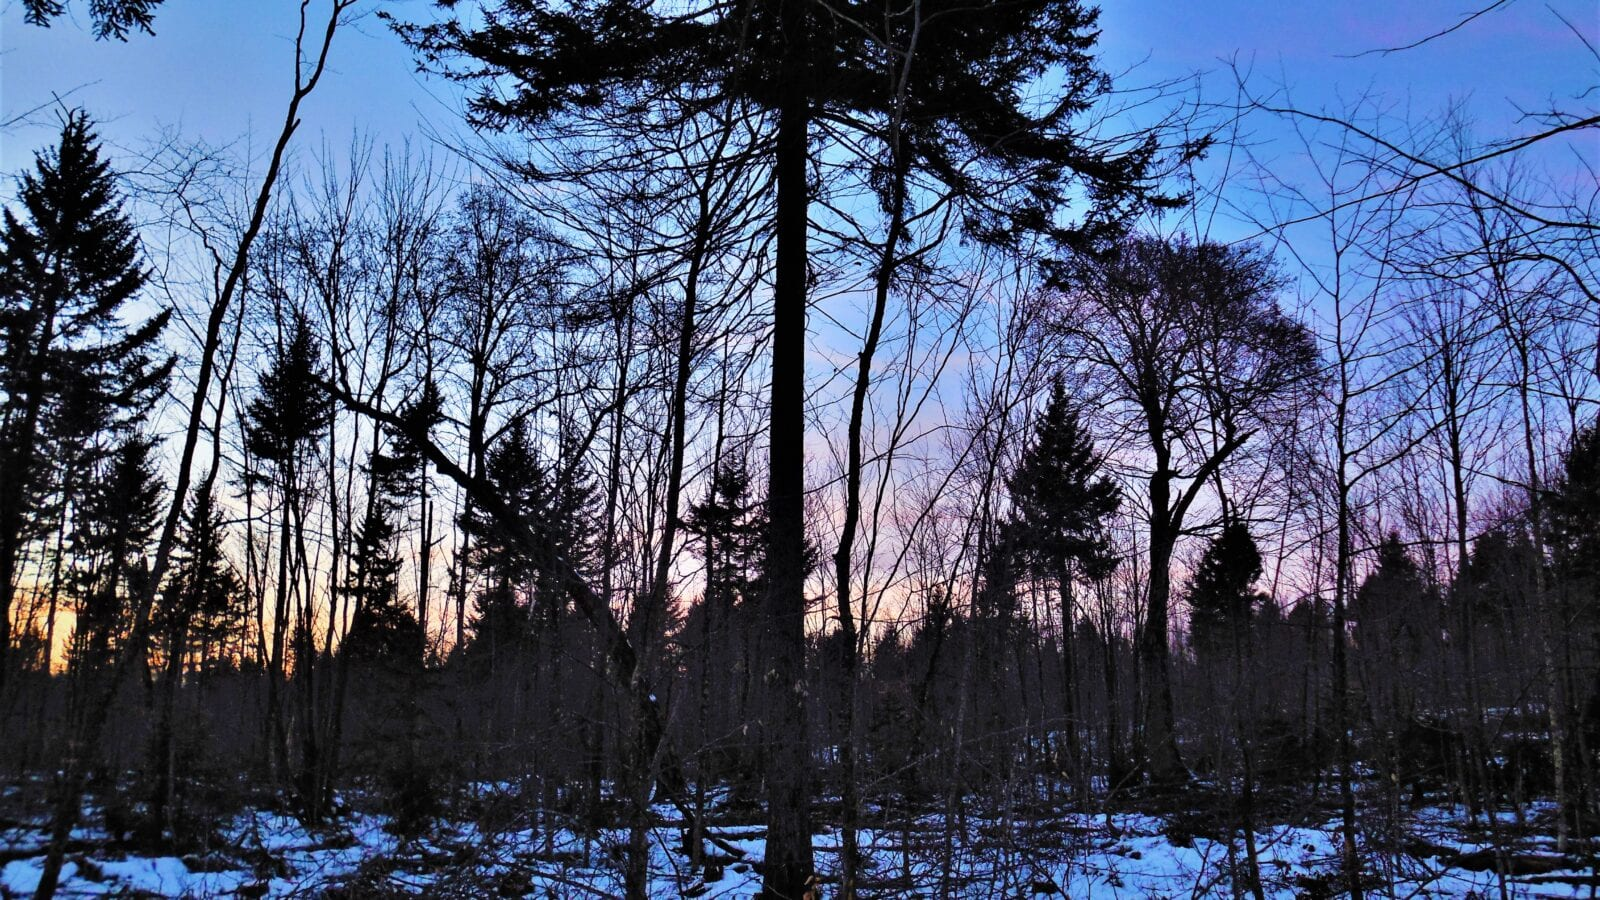 photo of winter forest scene with sunset in background